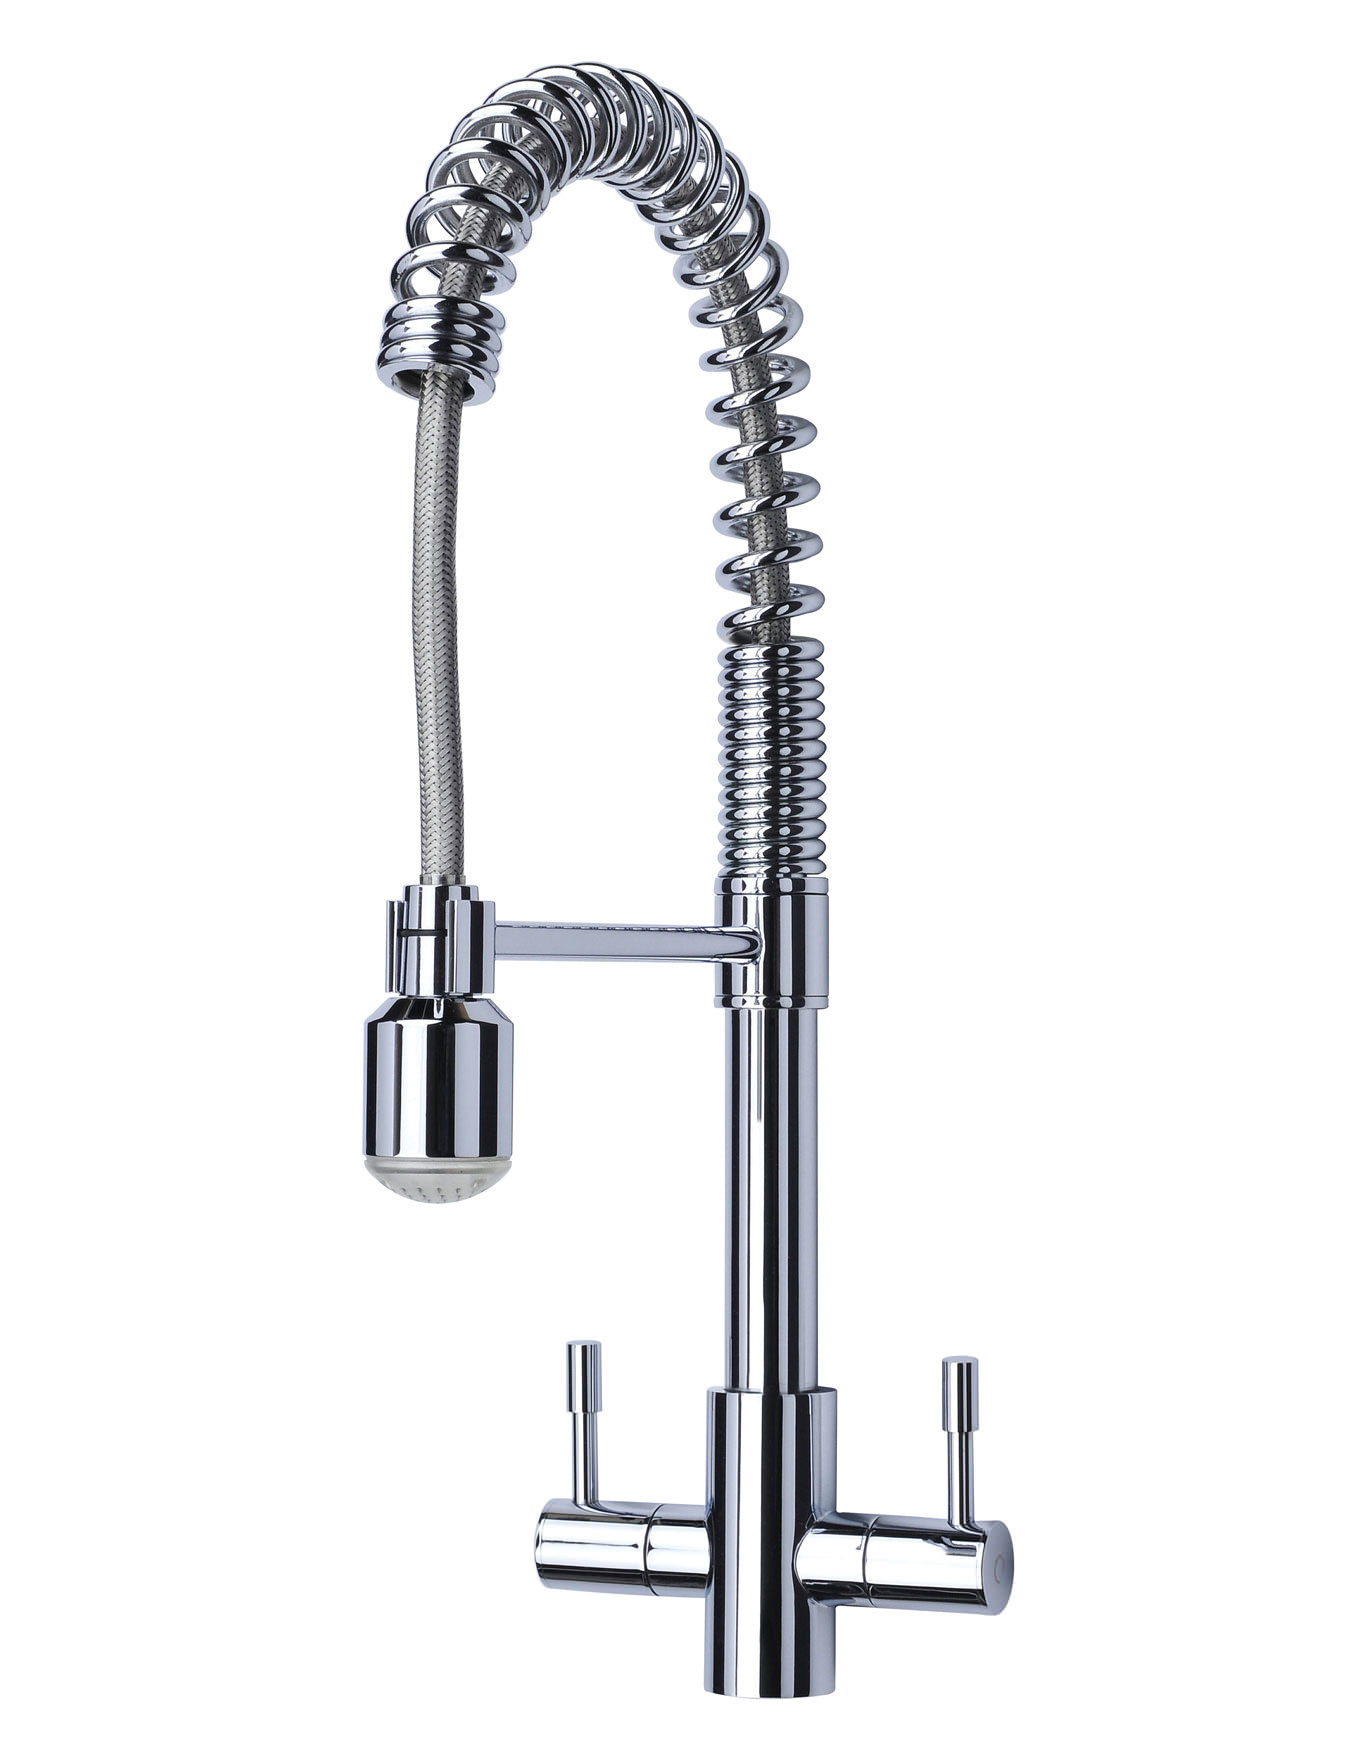 Charming Taps Uk Kitchen Sinks Part - 14: Mayfair Groove Kitchen Sink Mixer Tap Chrome